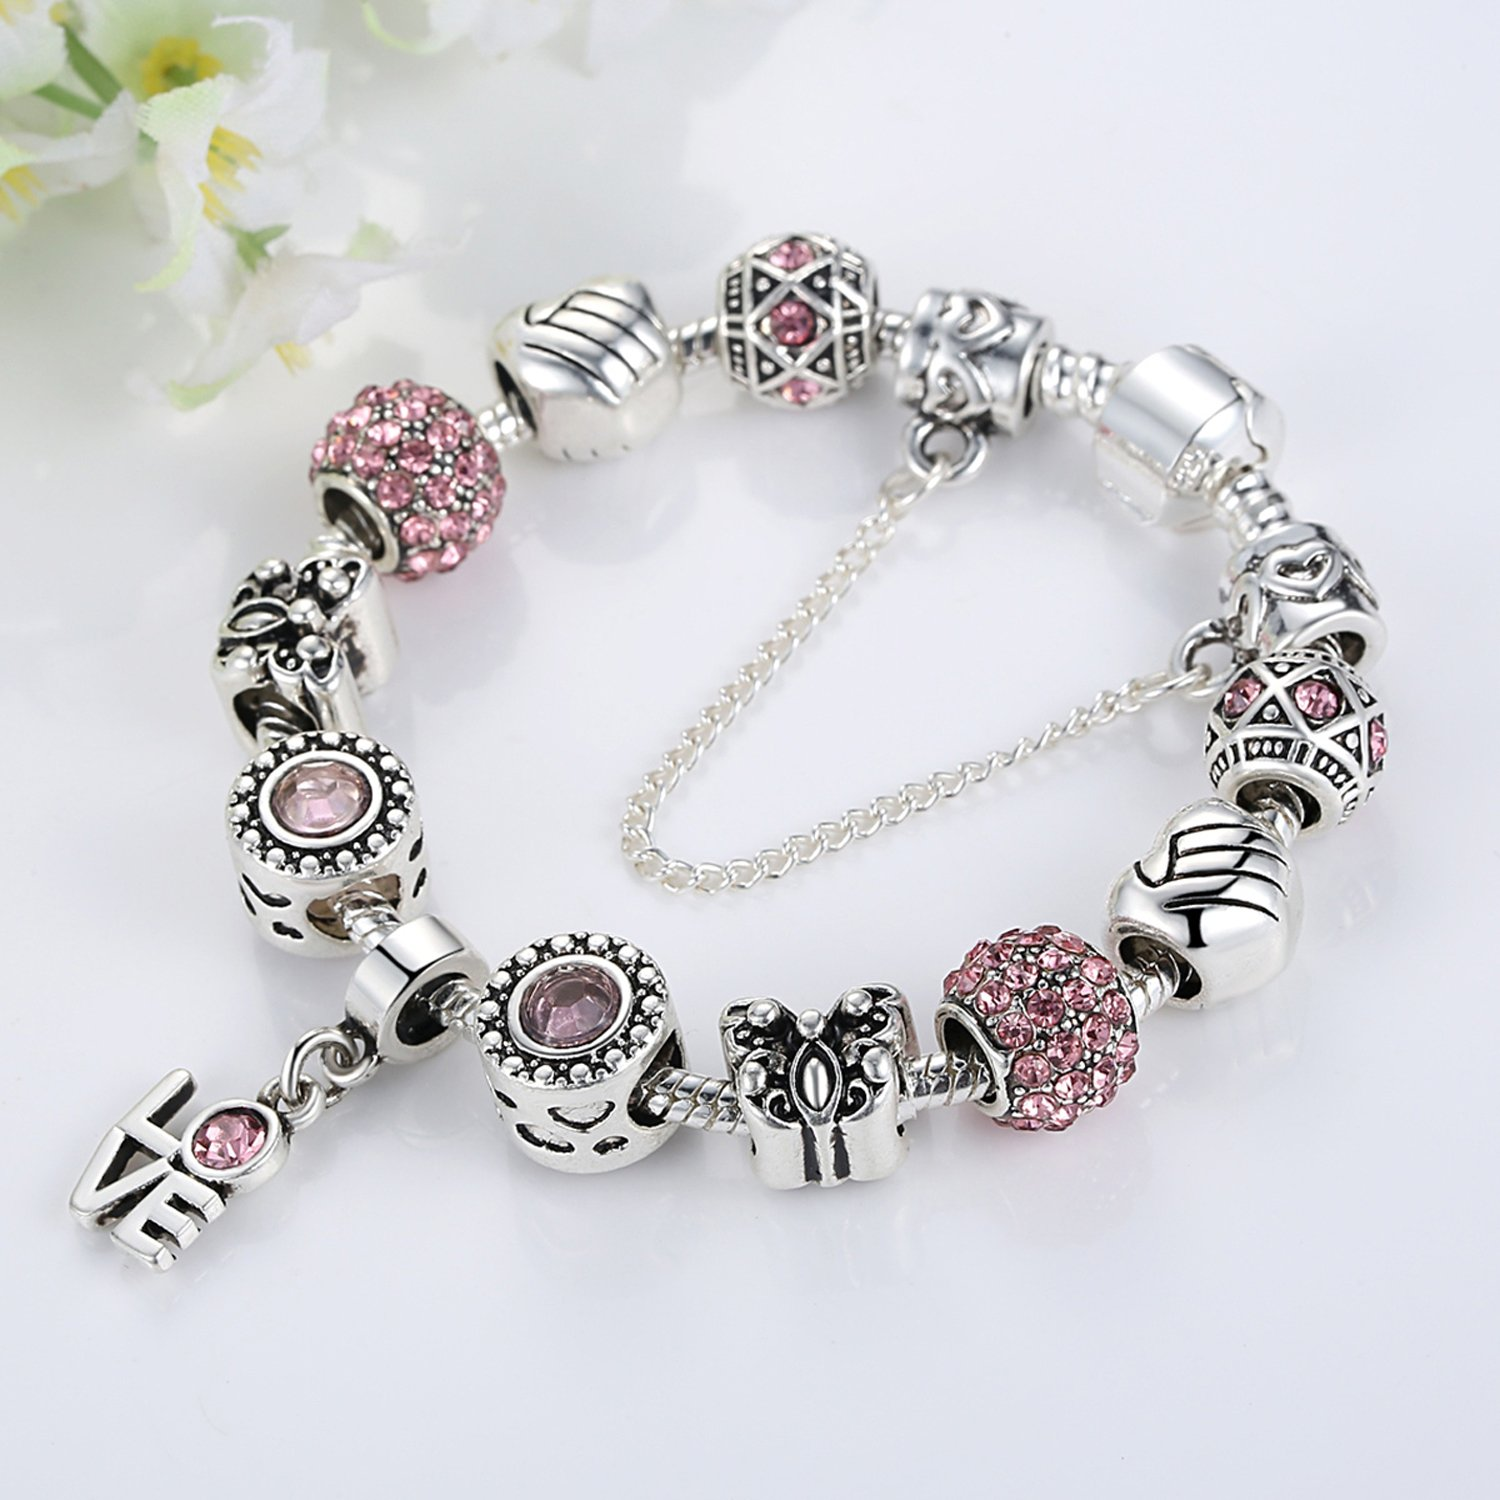 130dcf8e4fe0b YOUFENG Love Beads Charms Bracelet for Girls and Women Murano Glass ...